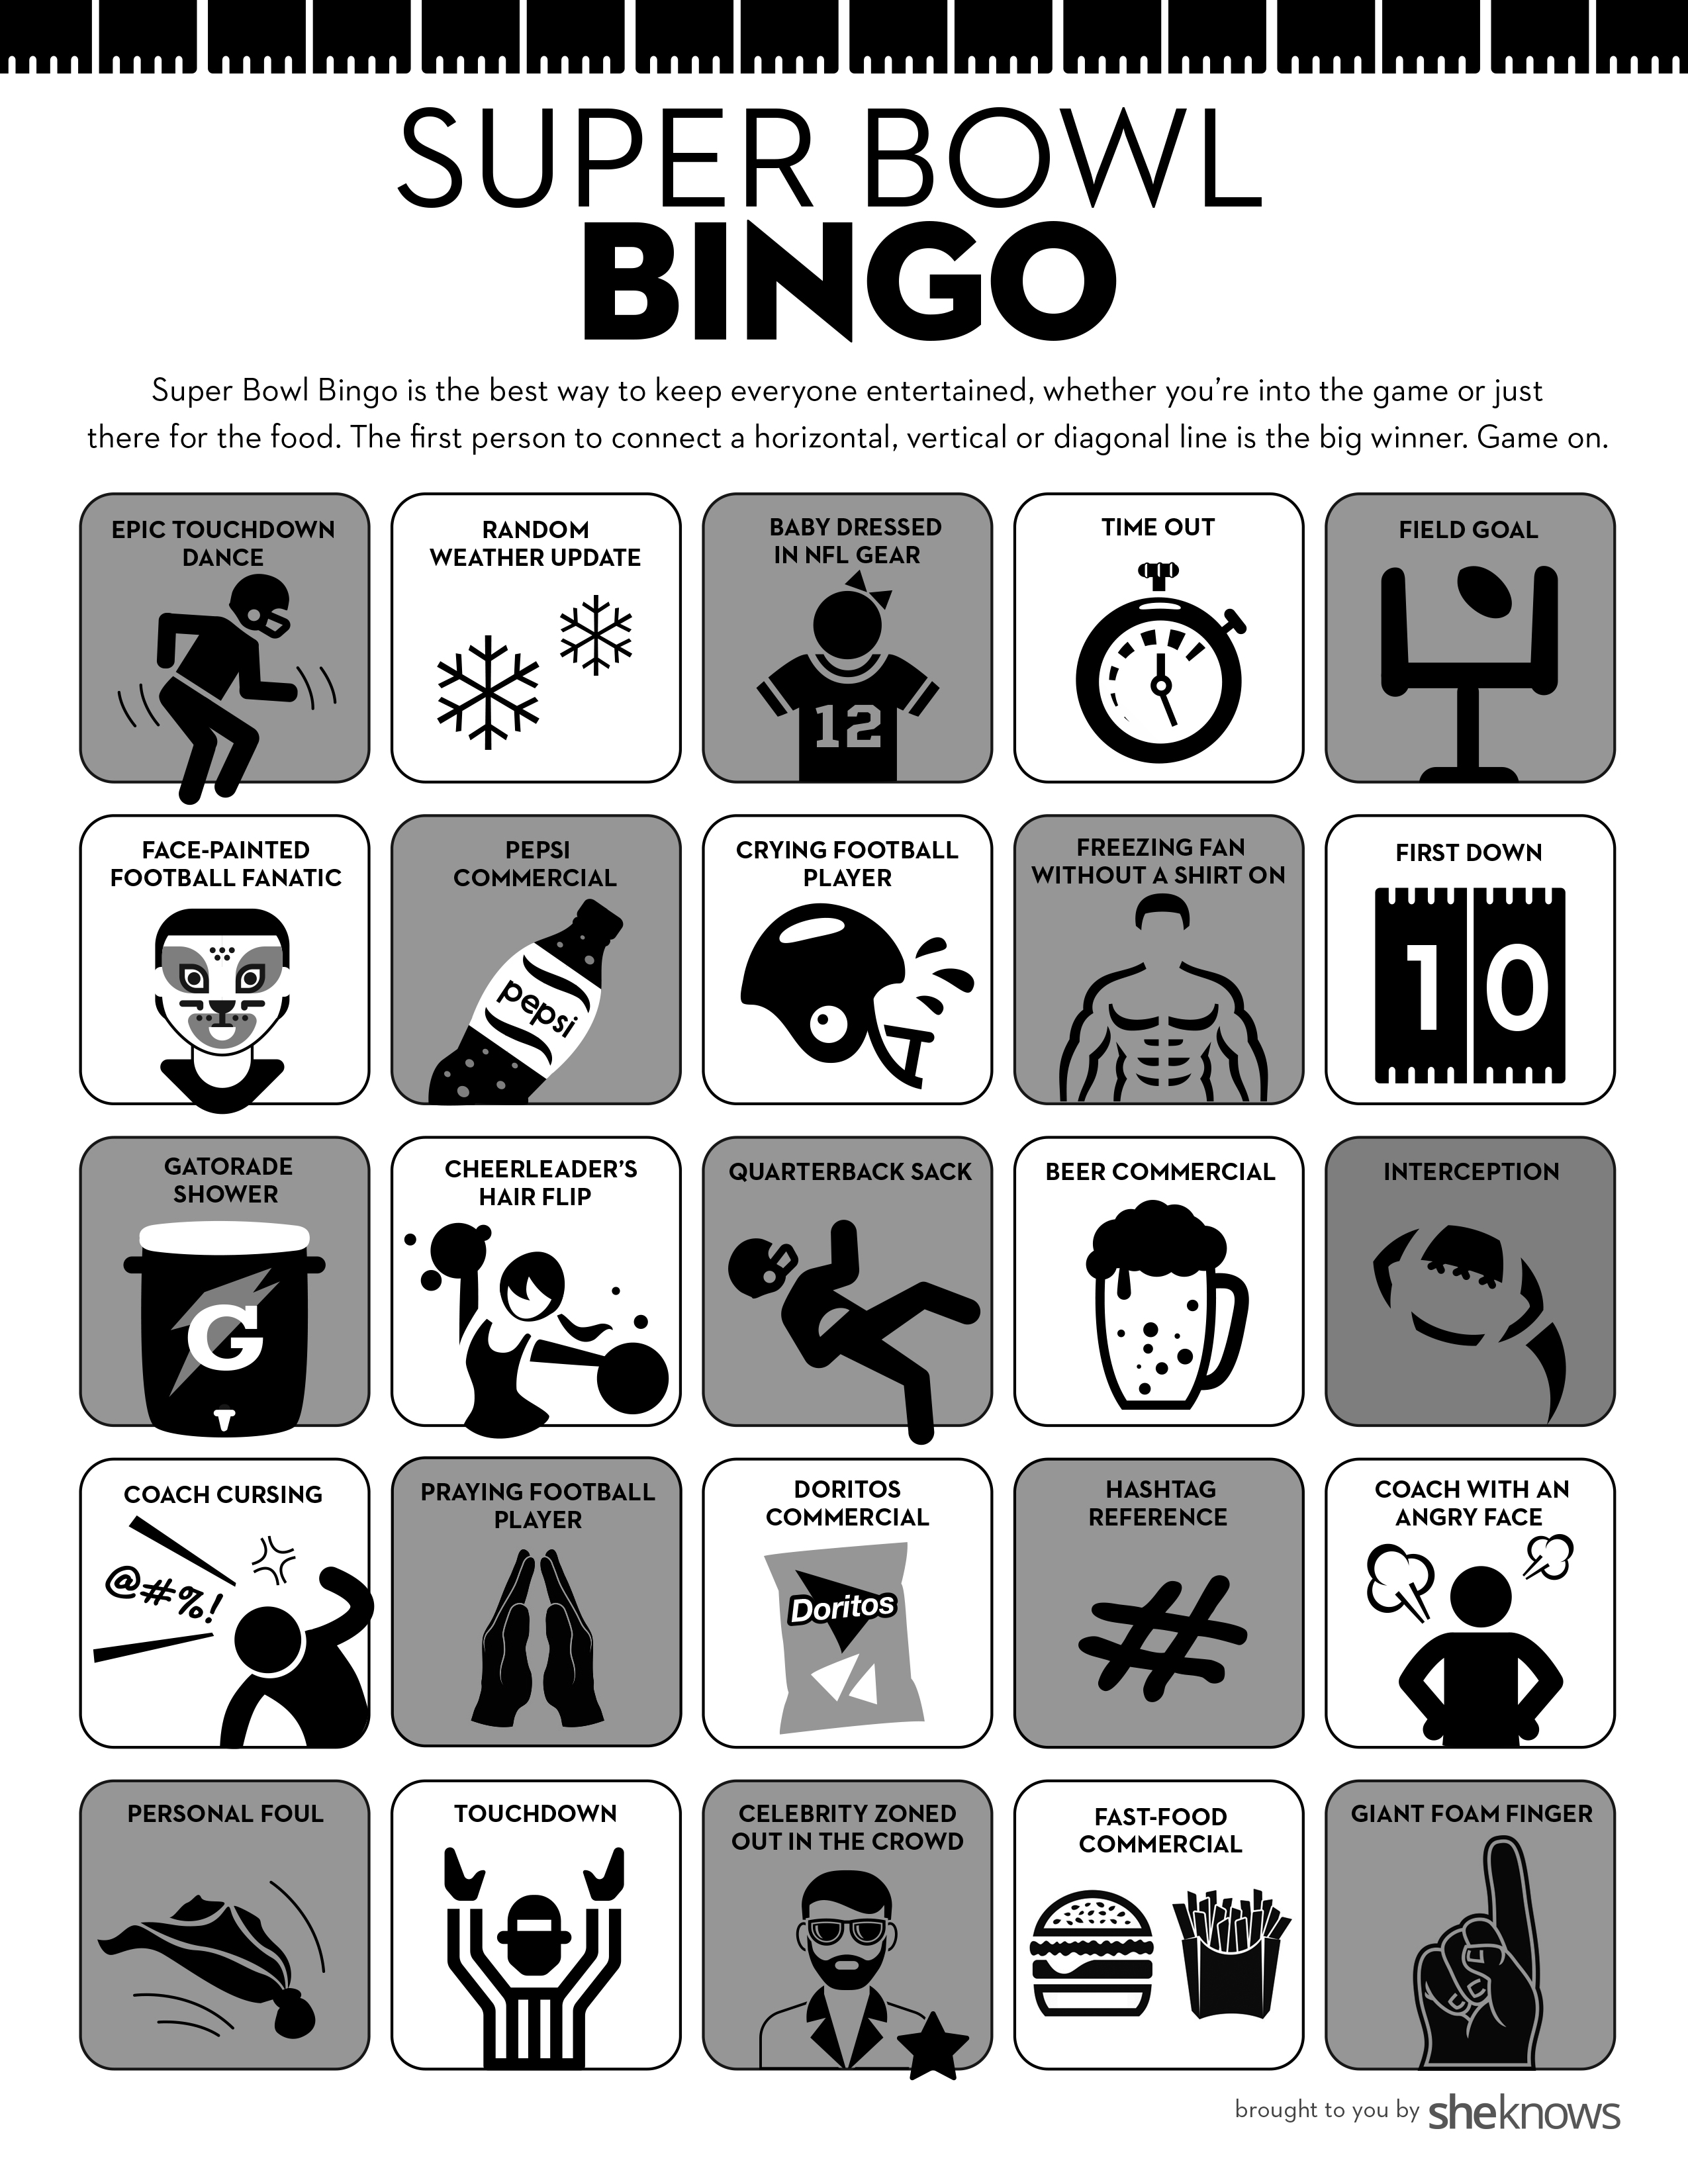 photo regarding Free Printable Football Bingo Cards identified as Tremendous Bowl Bingo Is the Fantastic Get together Recreation for Everybody